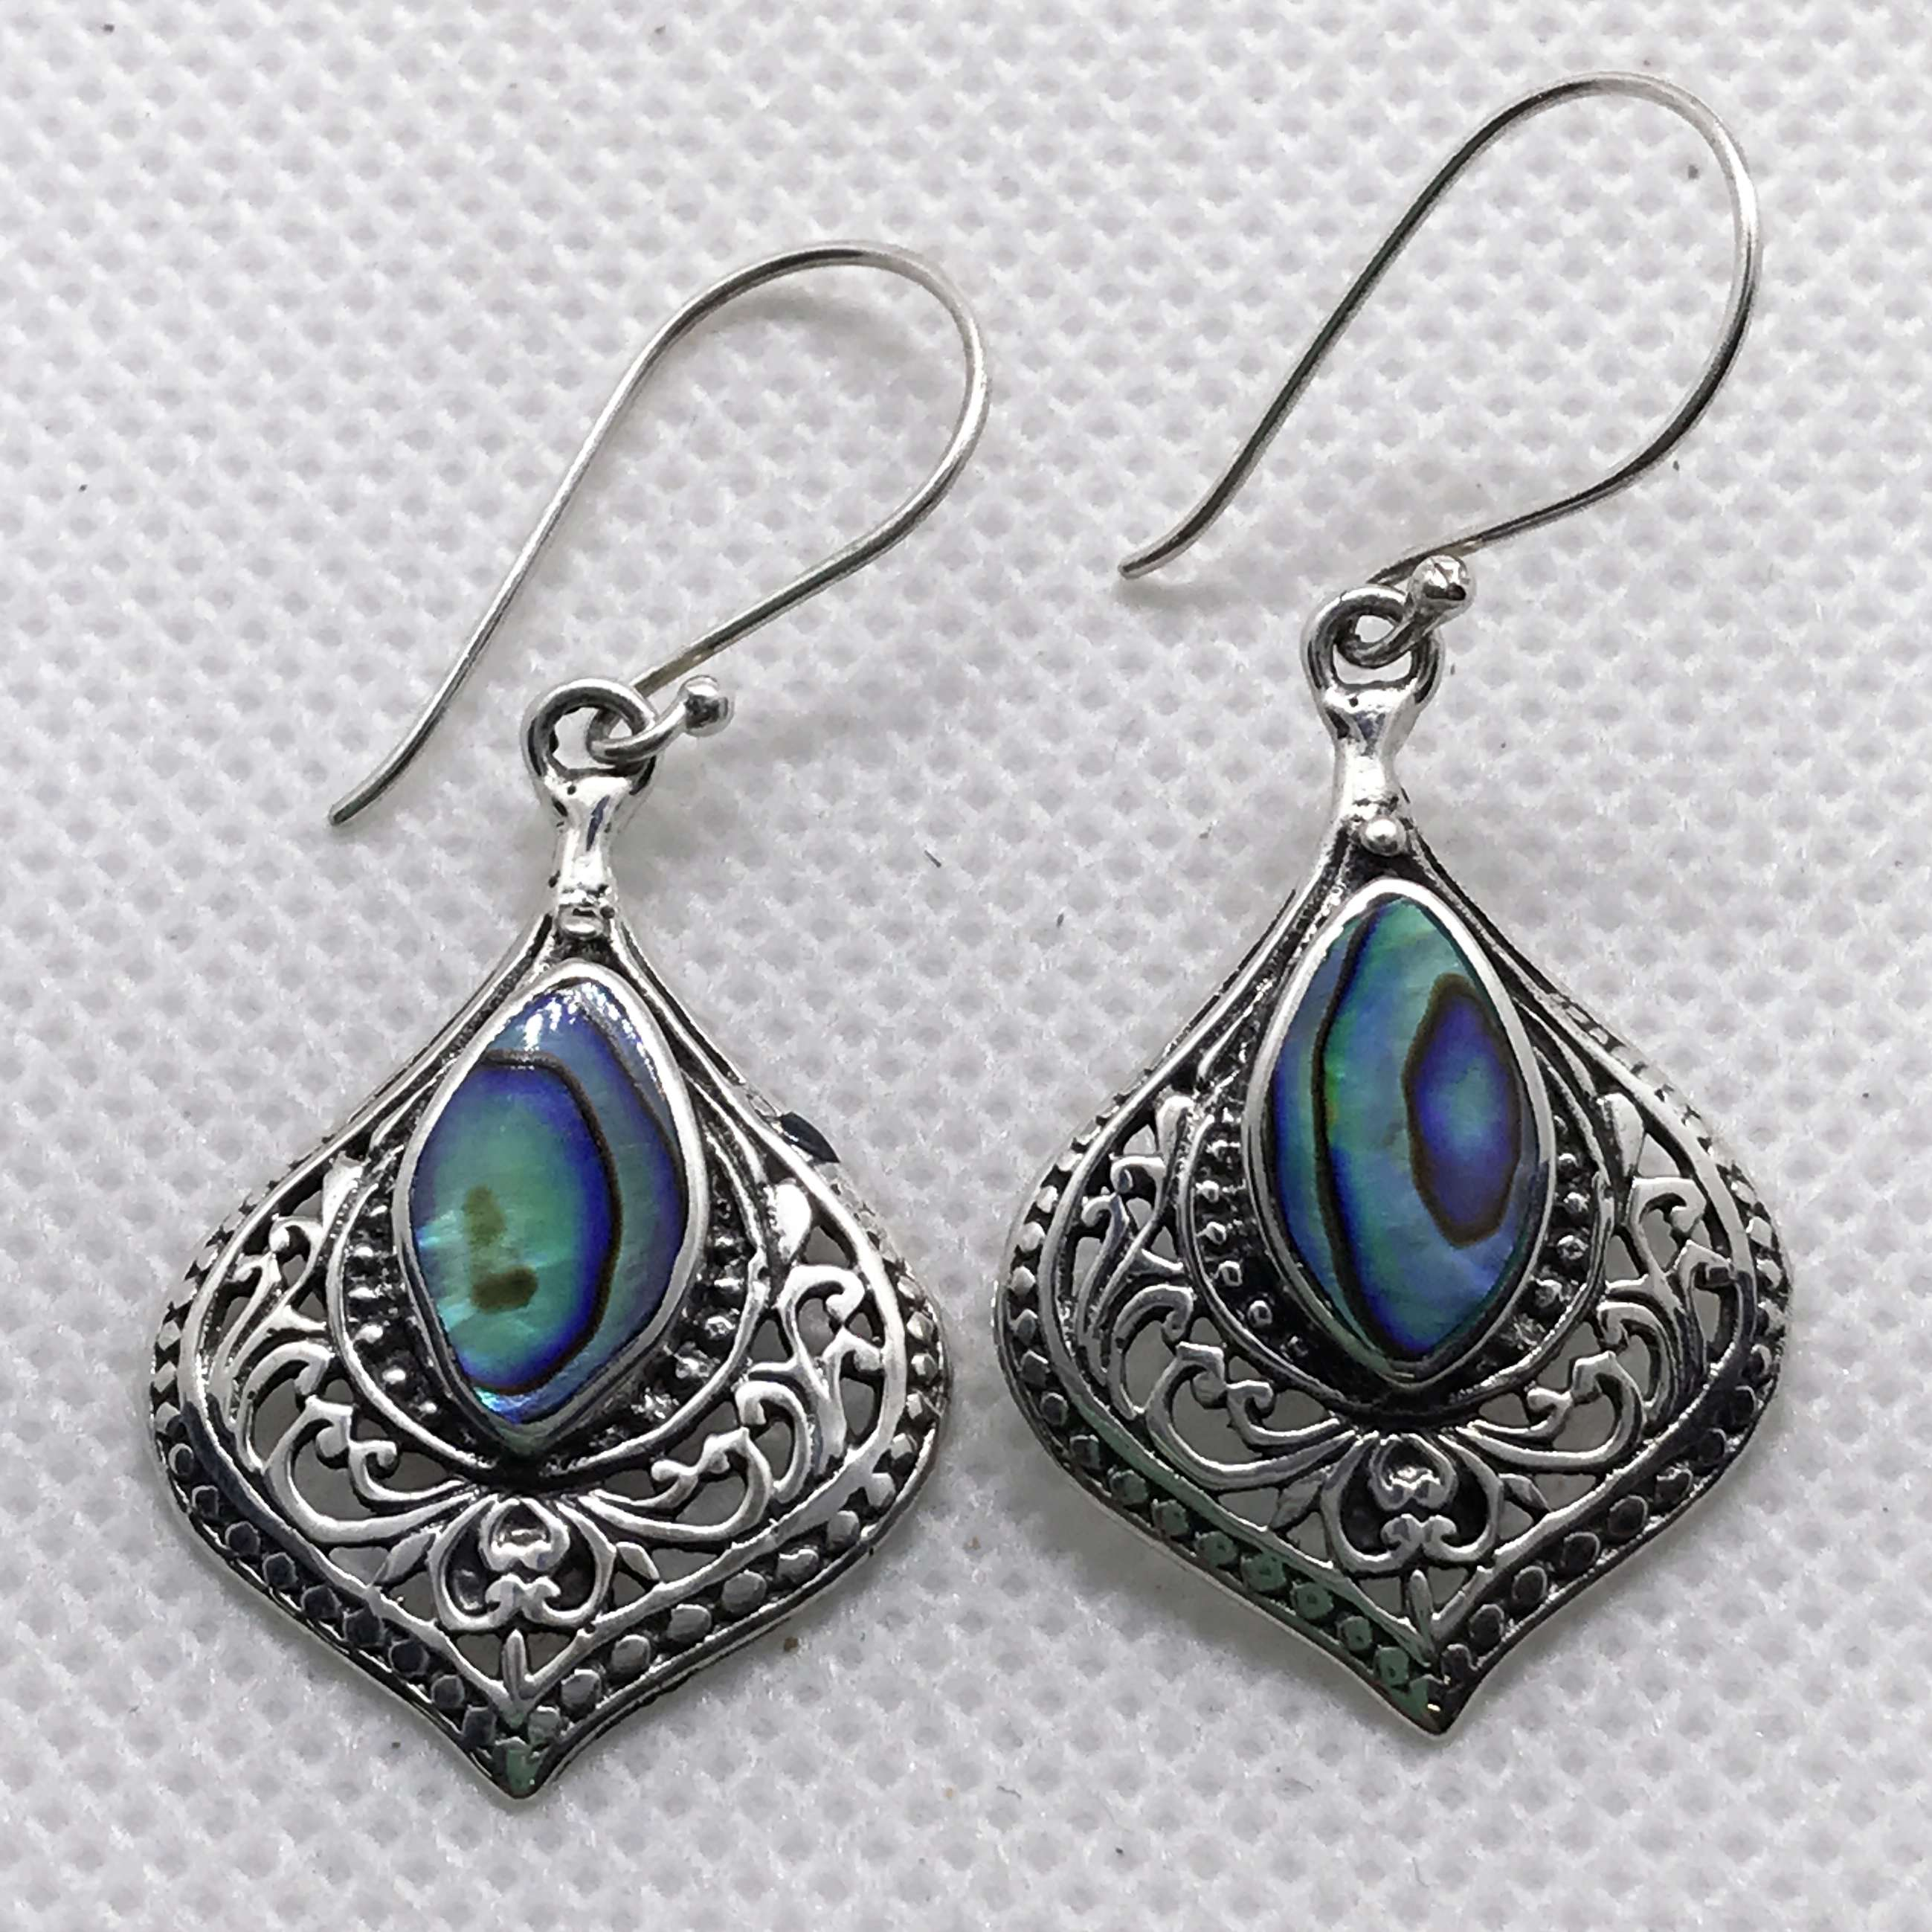 BALI 925 STERLING SILVER EARRINGS WITH ABALONE